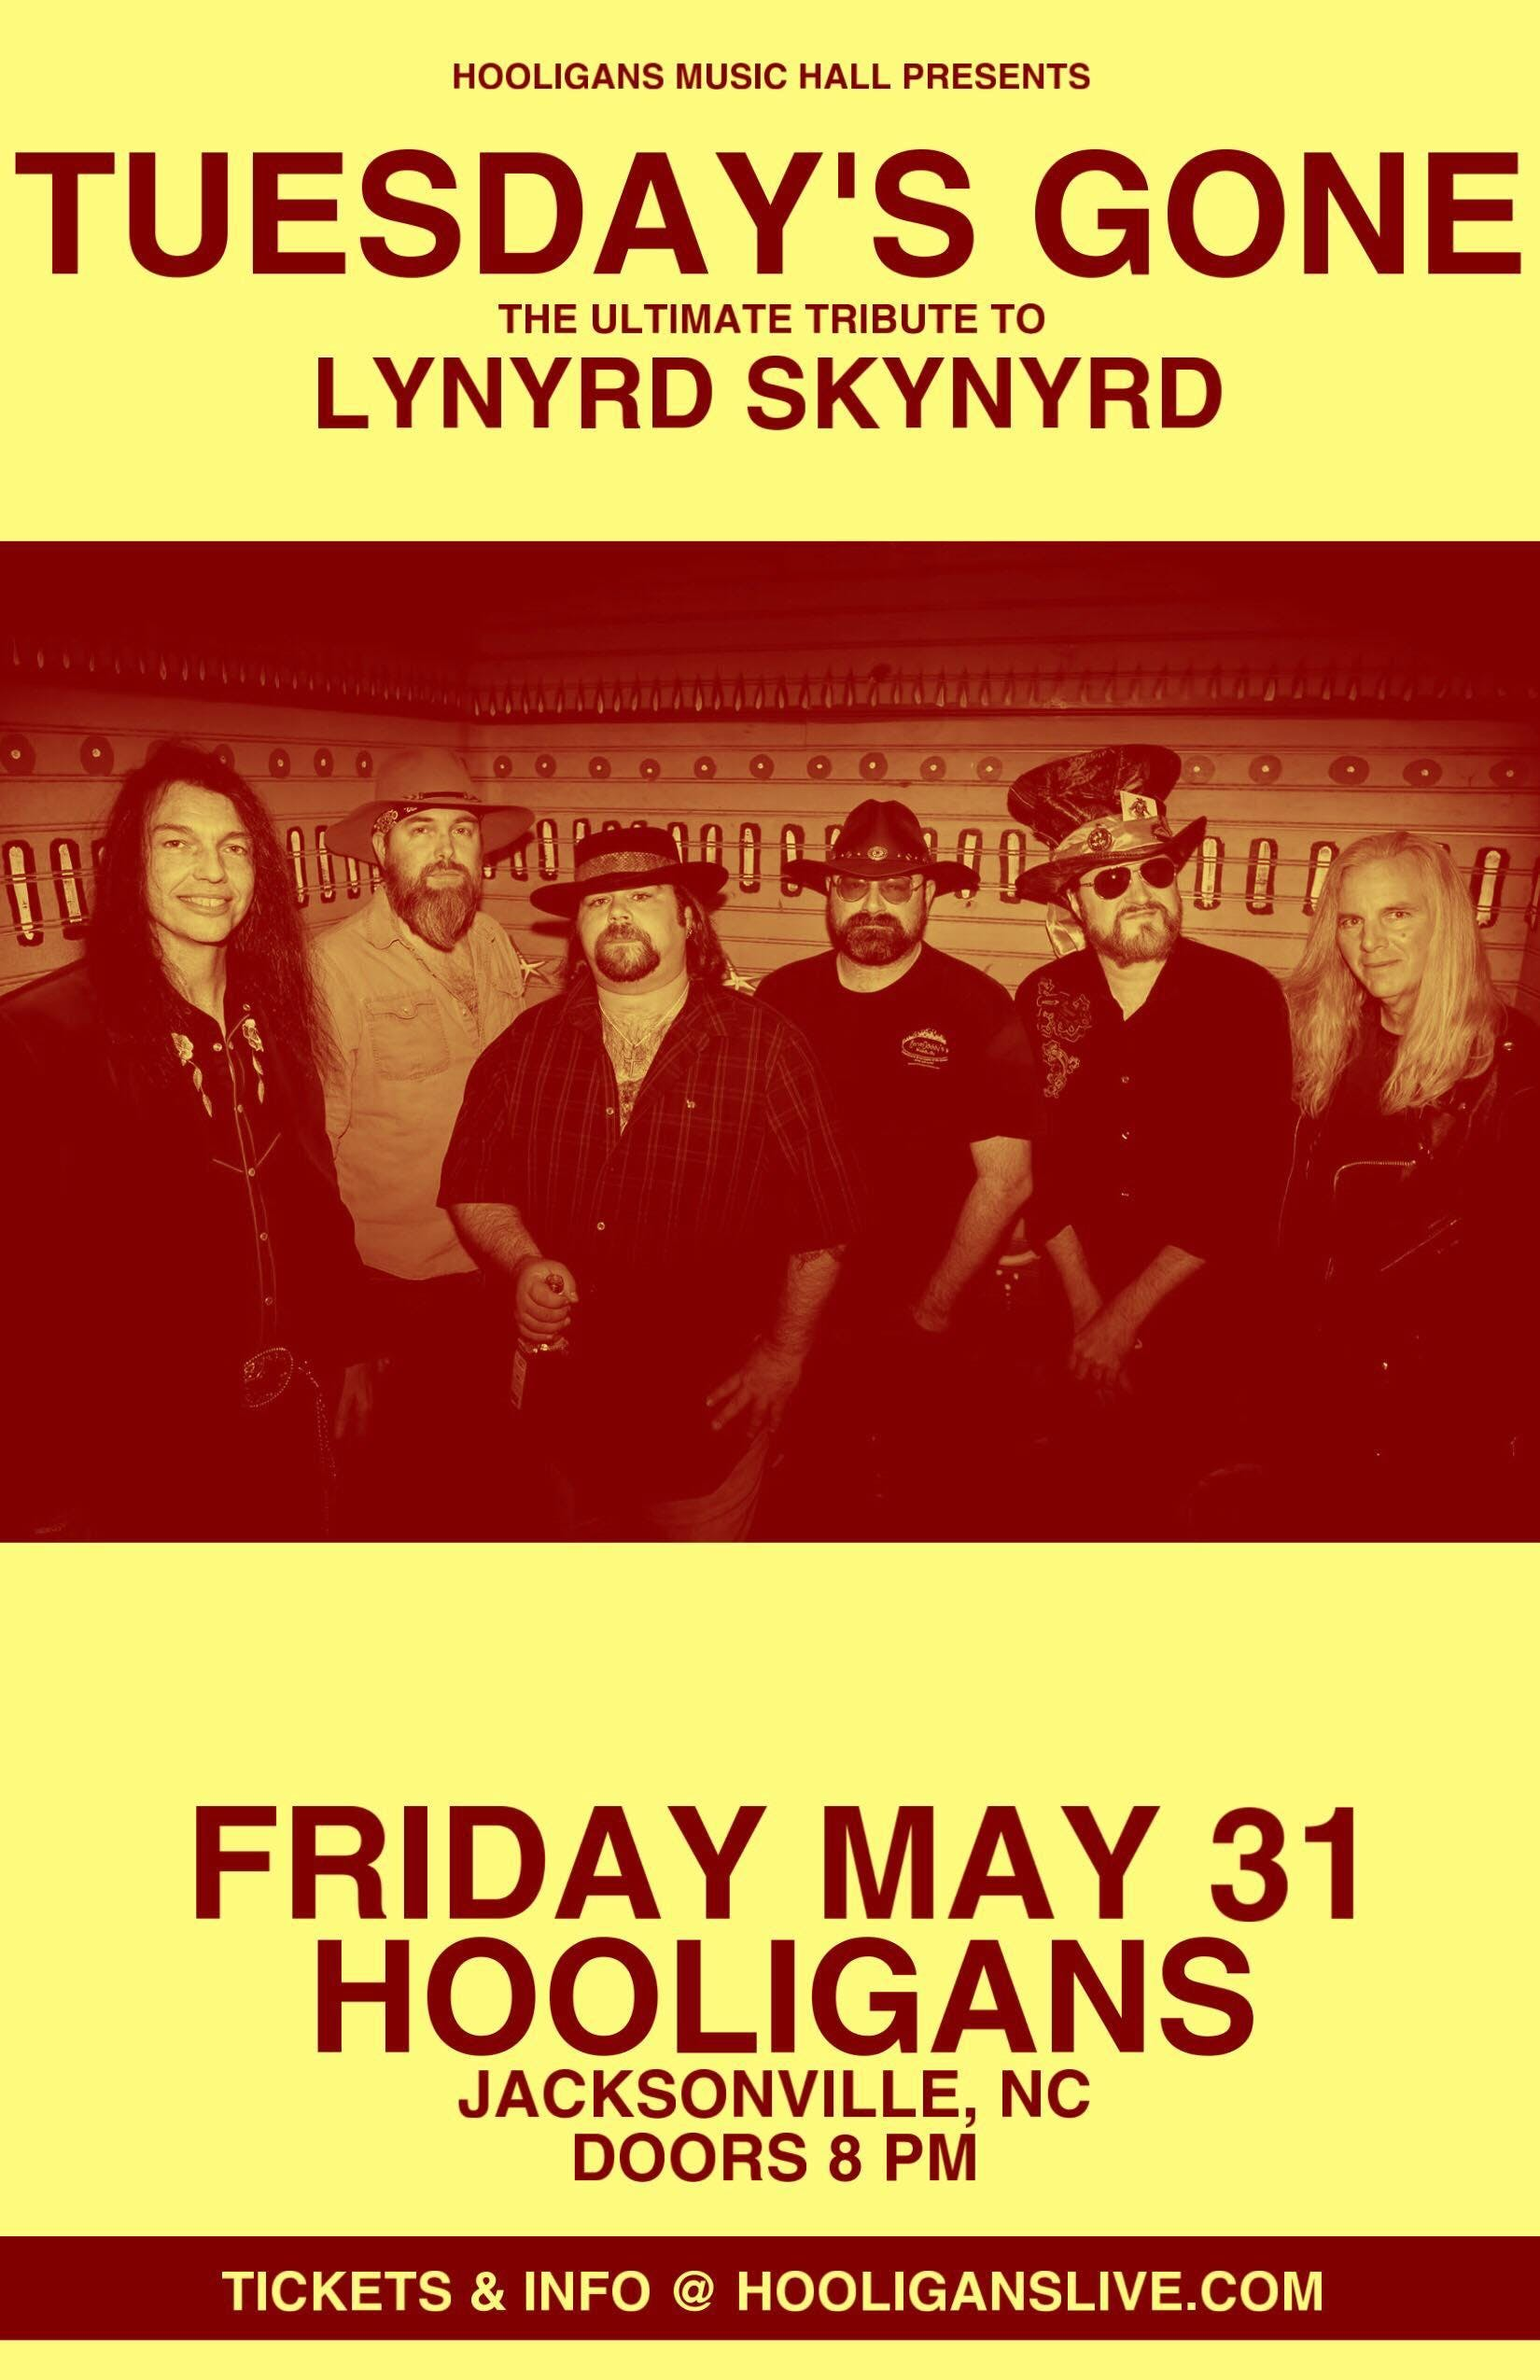 a2d1567368b6 Tuesday s Gone- Ultimate Lynyrd Skynyrd Tribute – Tickets – Hooligans Music  Hall – Jacksonville